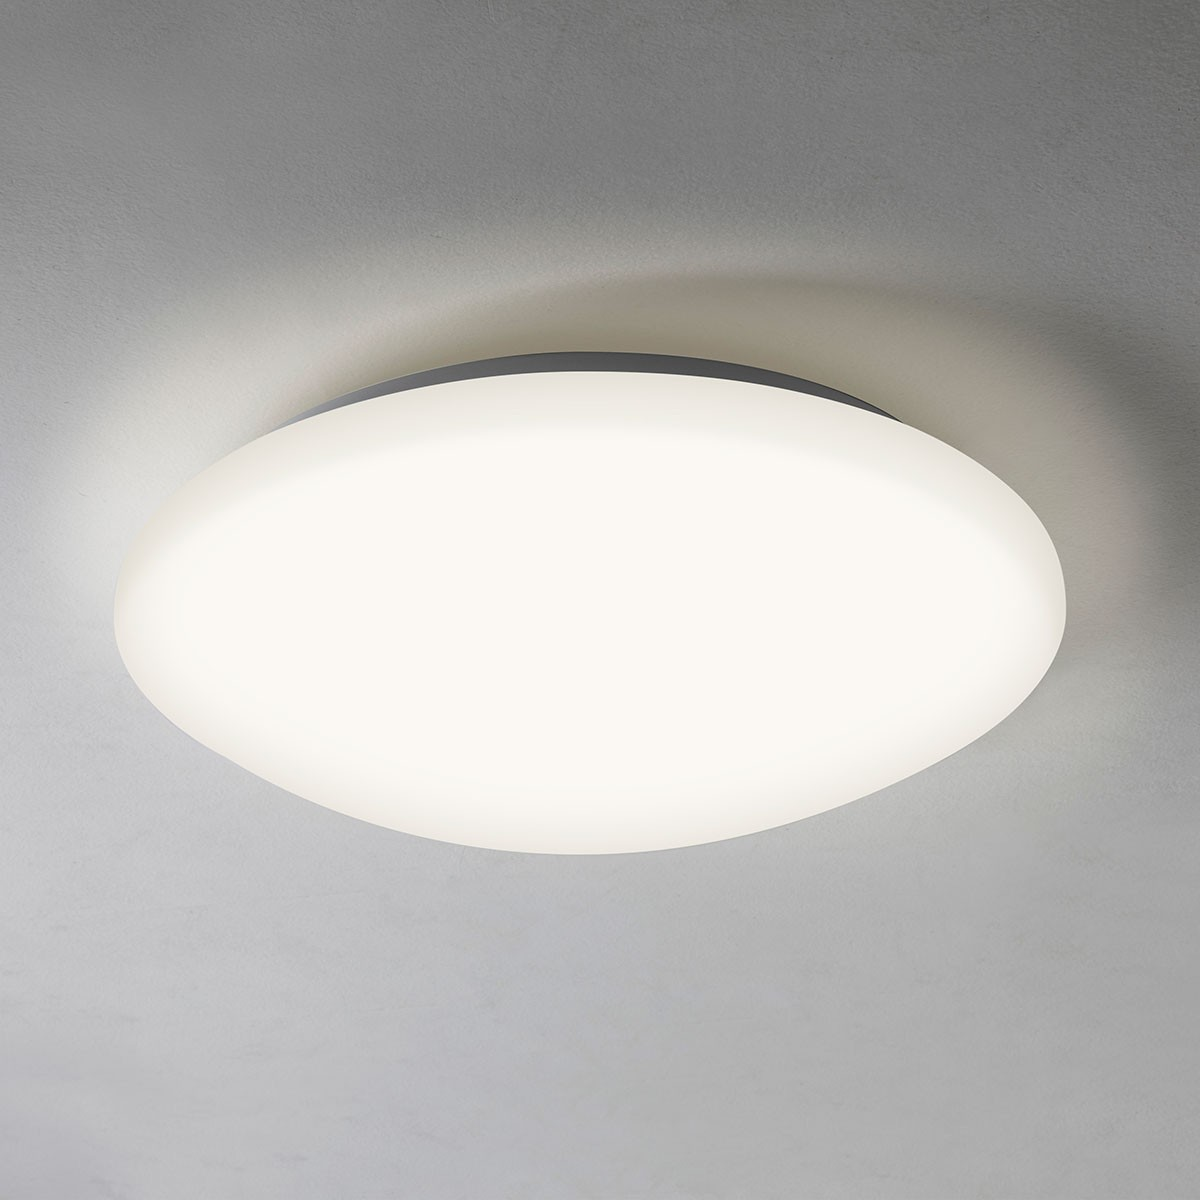 White Ceiling Lights: Astro Massa 300 White Ceiling Light At UK Electrical Supplies